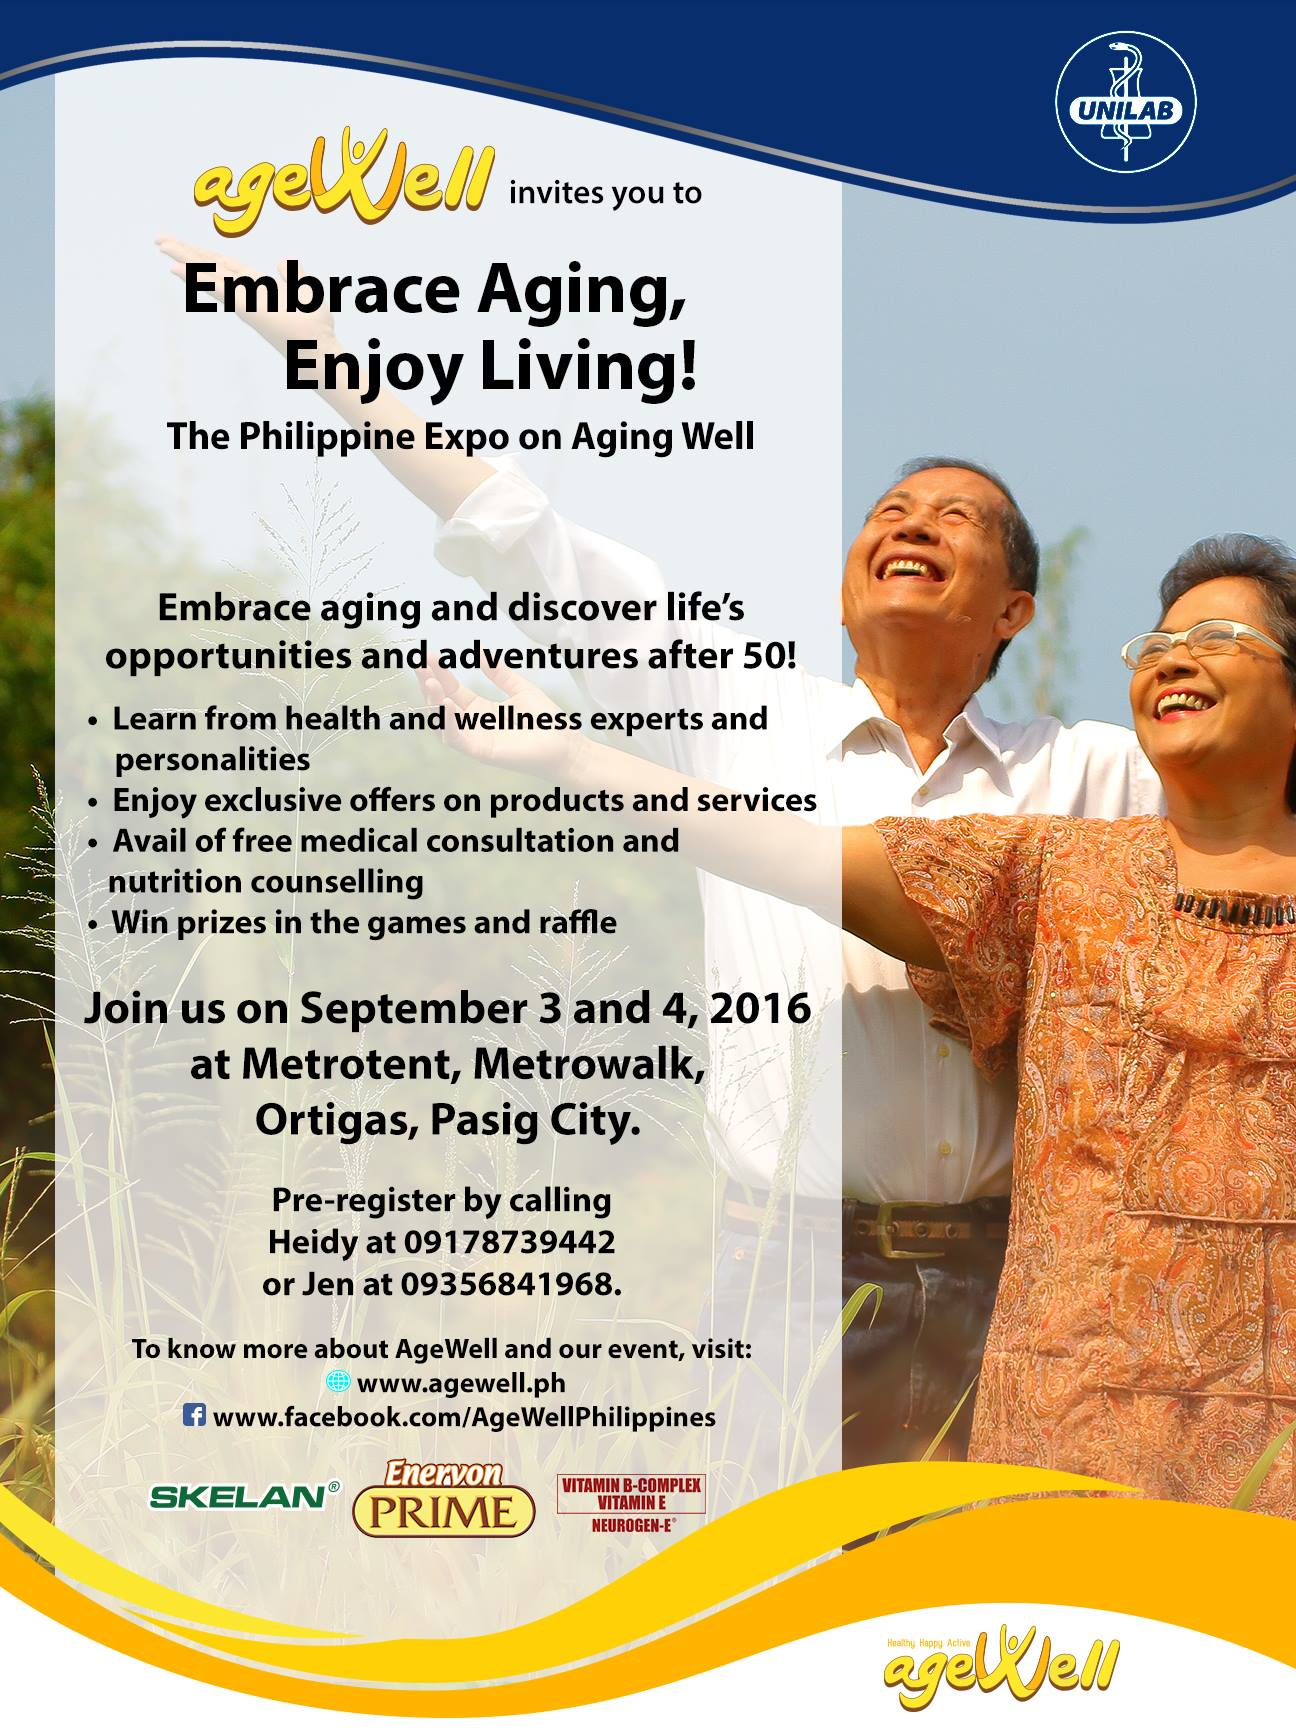 age well event for seniors